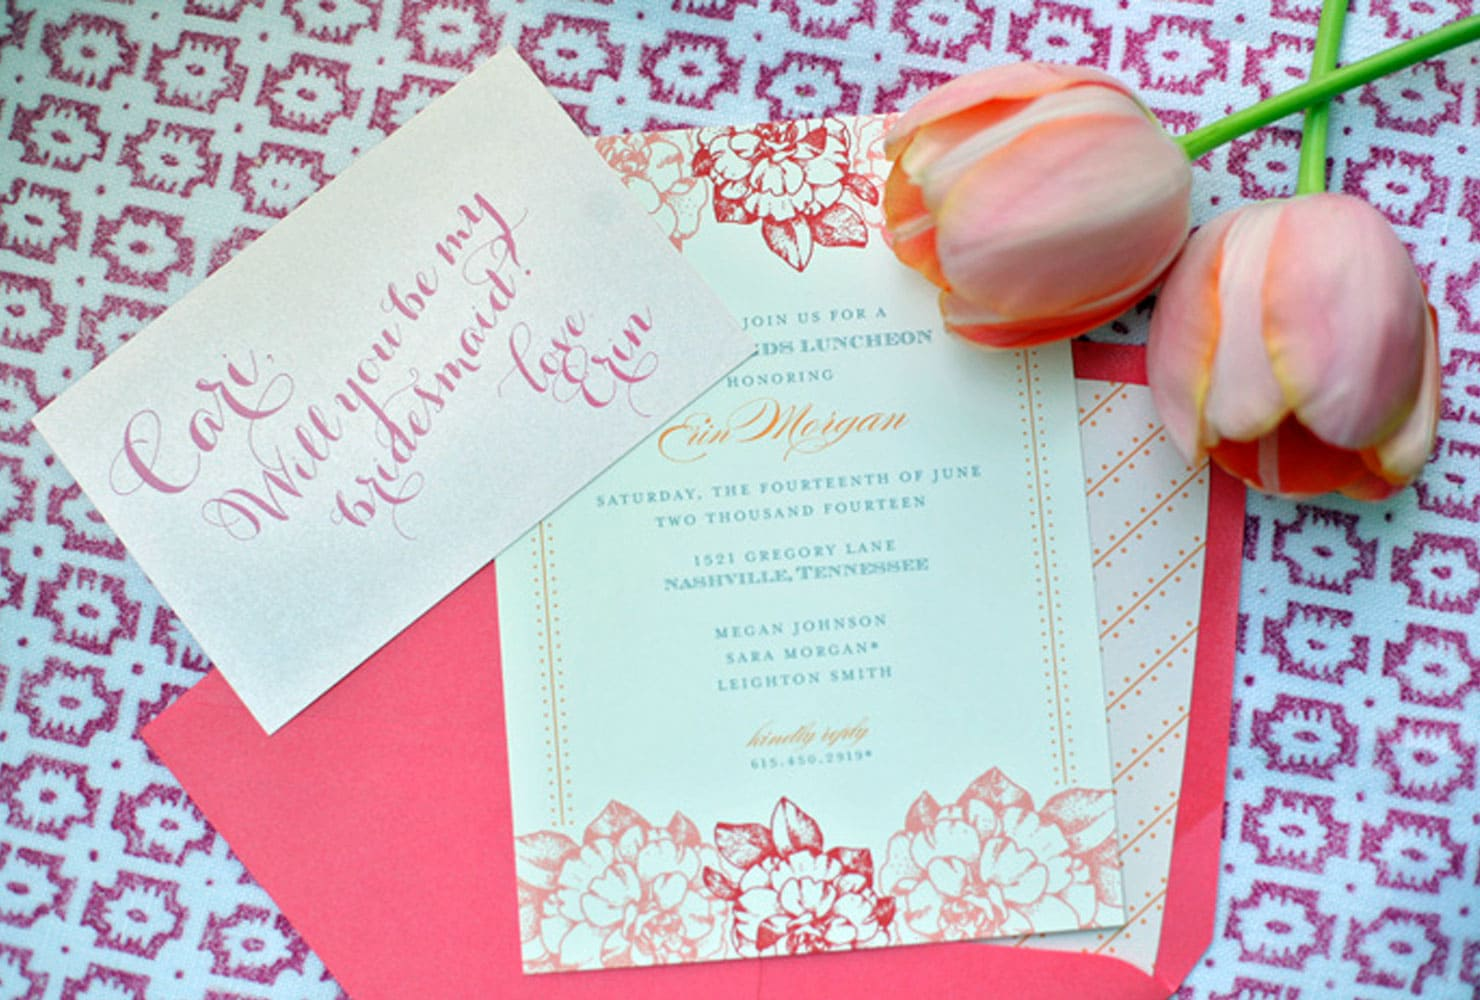 Pink and white invitation with pink tulips